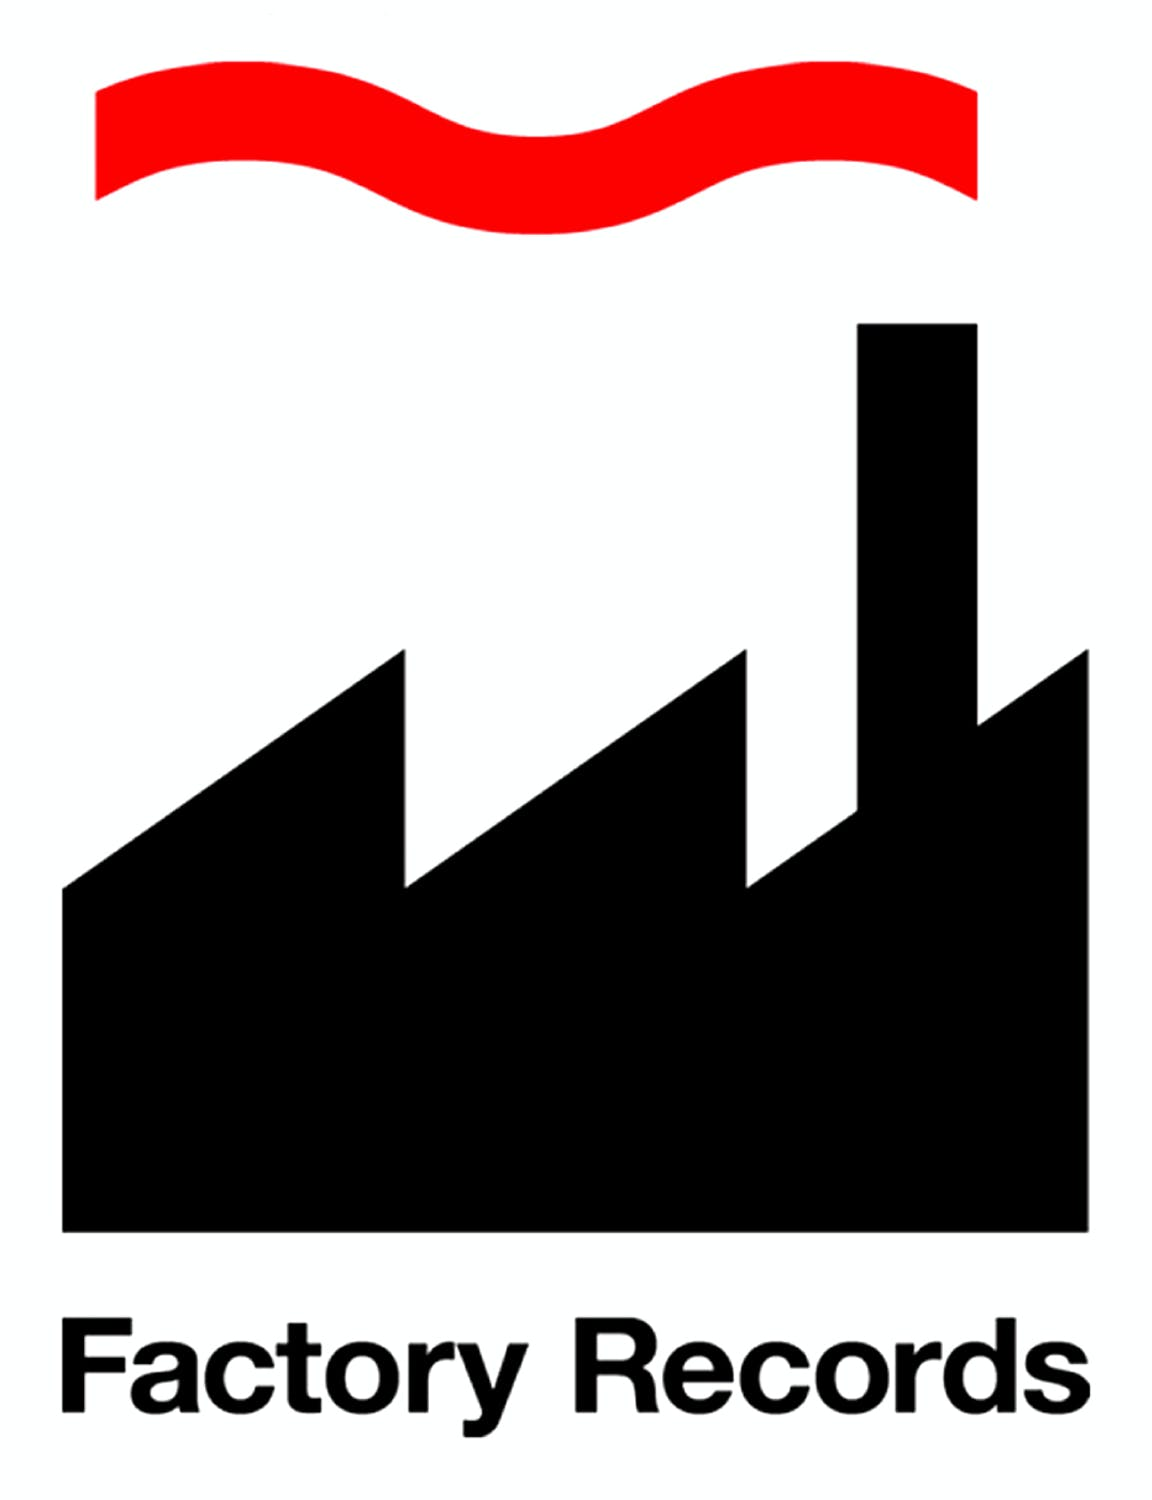 9395cf20 Factory Records: Factory smokestack silhouette logo by Peter Saville  Associates, 1984.